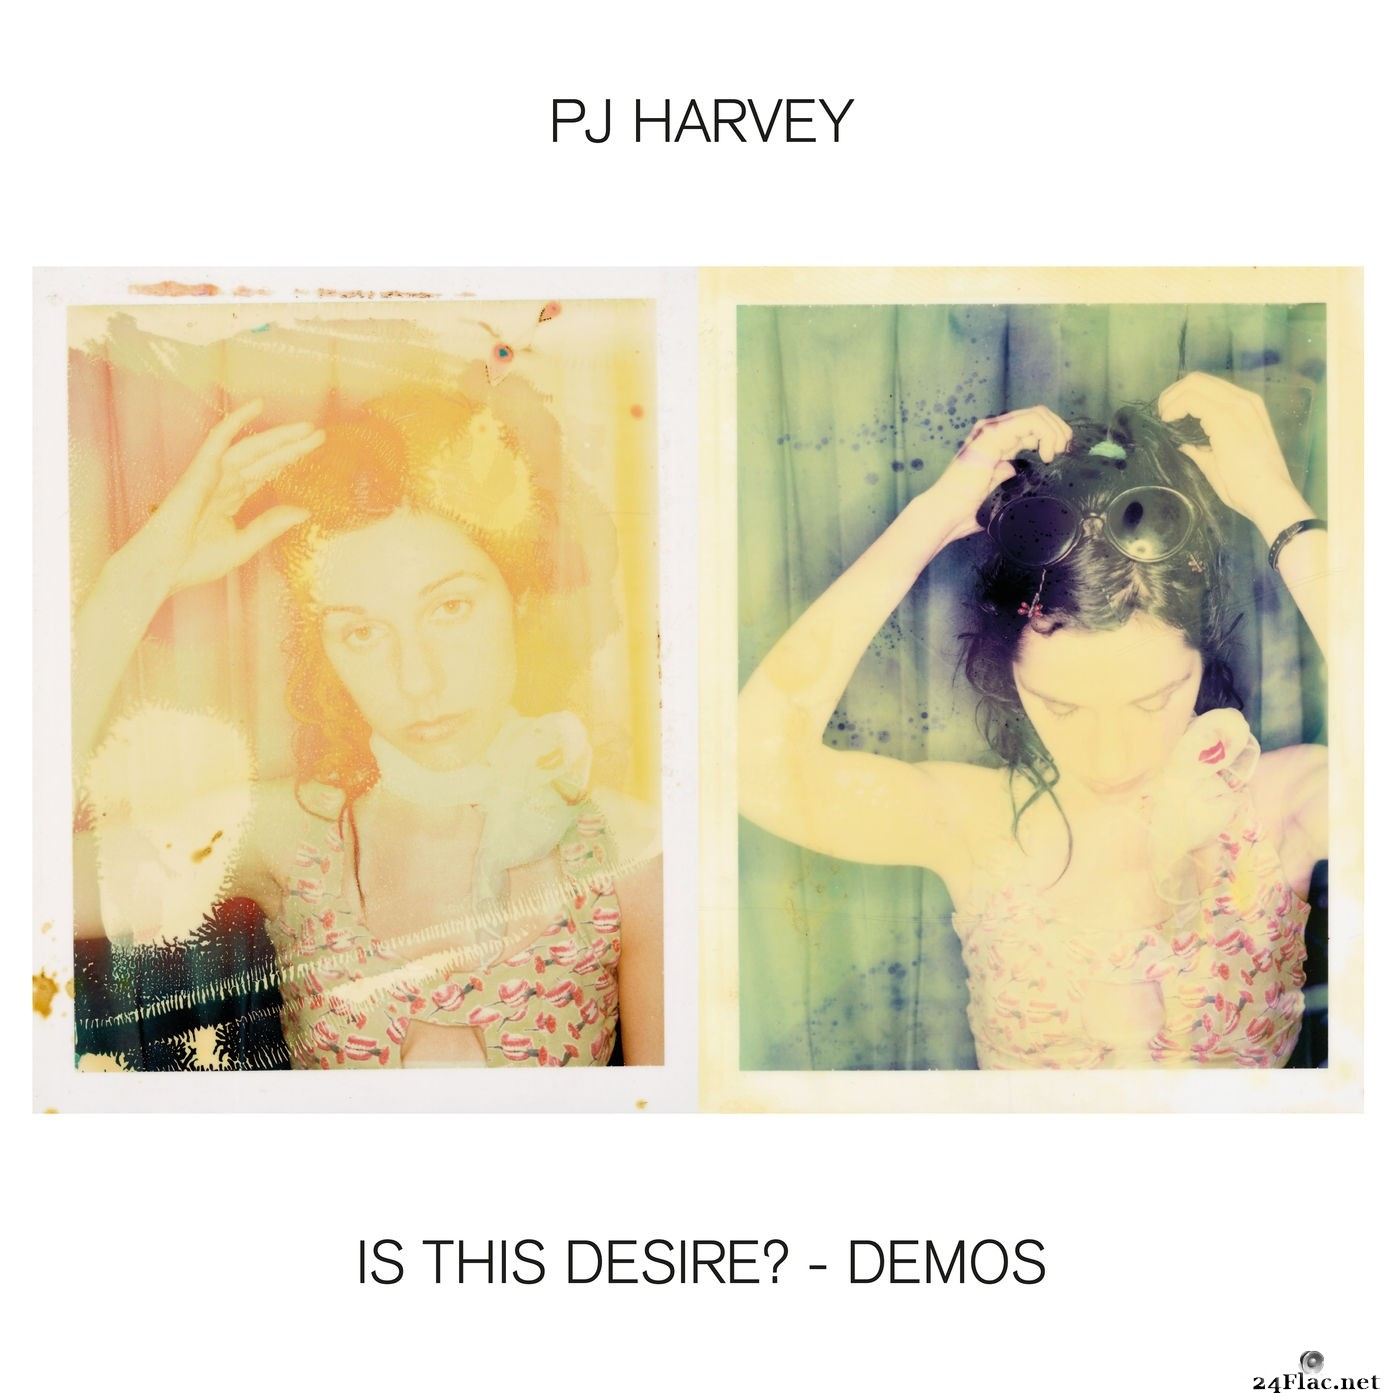 PJ Harvey - Is This Desire? - Demos (2021) Hi-Res